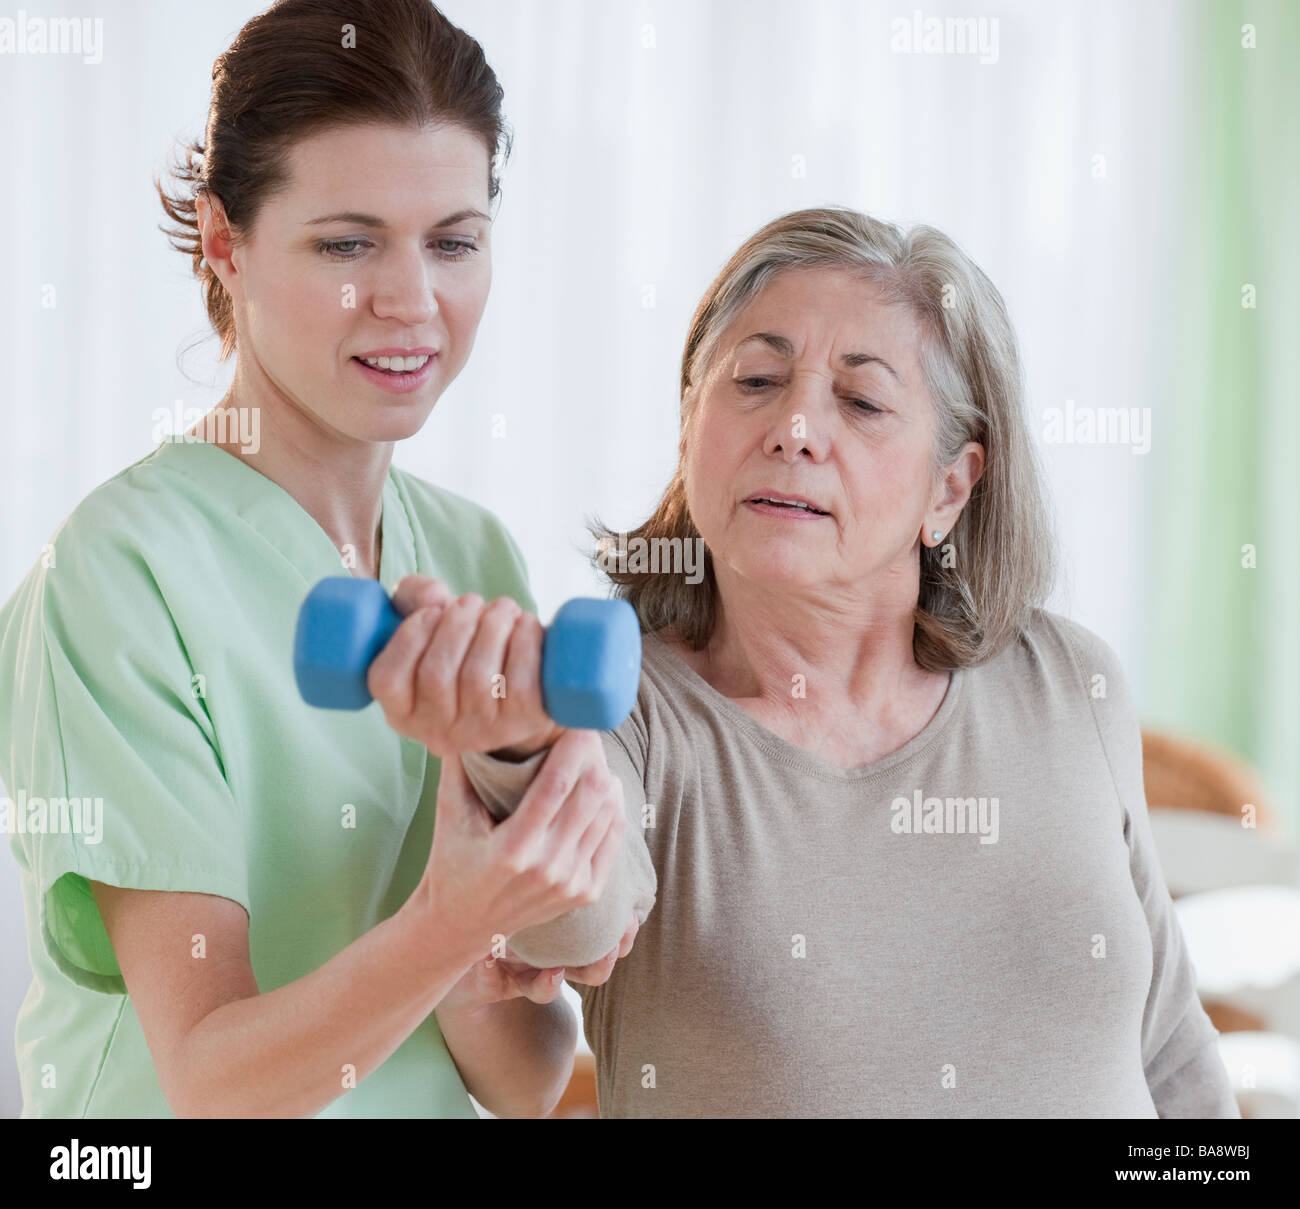 Physical therapist helping senior woman - Stock Image